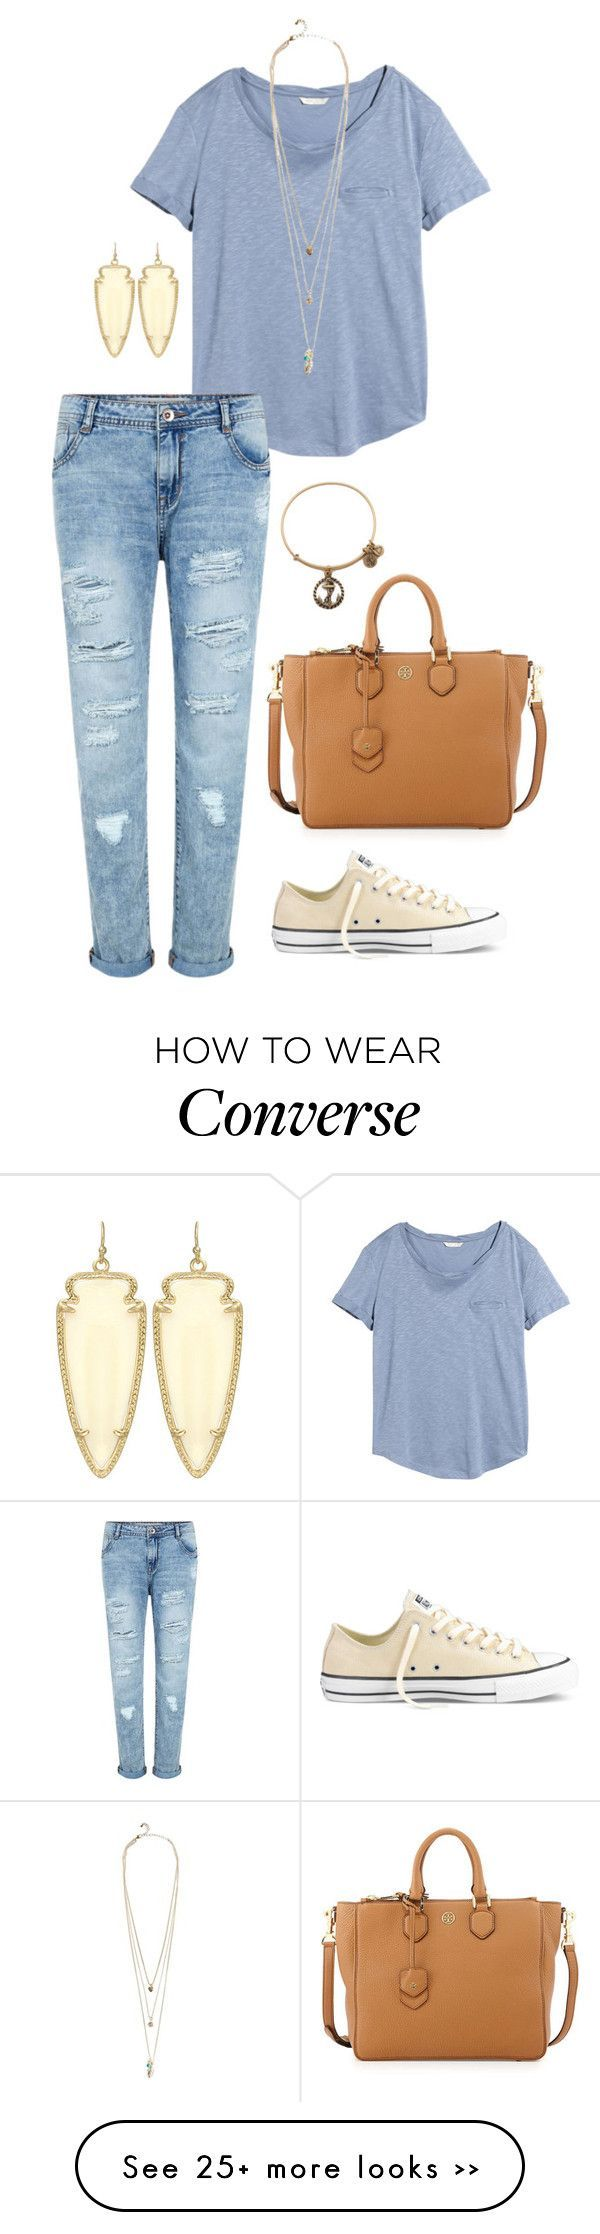 """Denim Shades"" by sunhatsandglitterjacks on Polyvore"